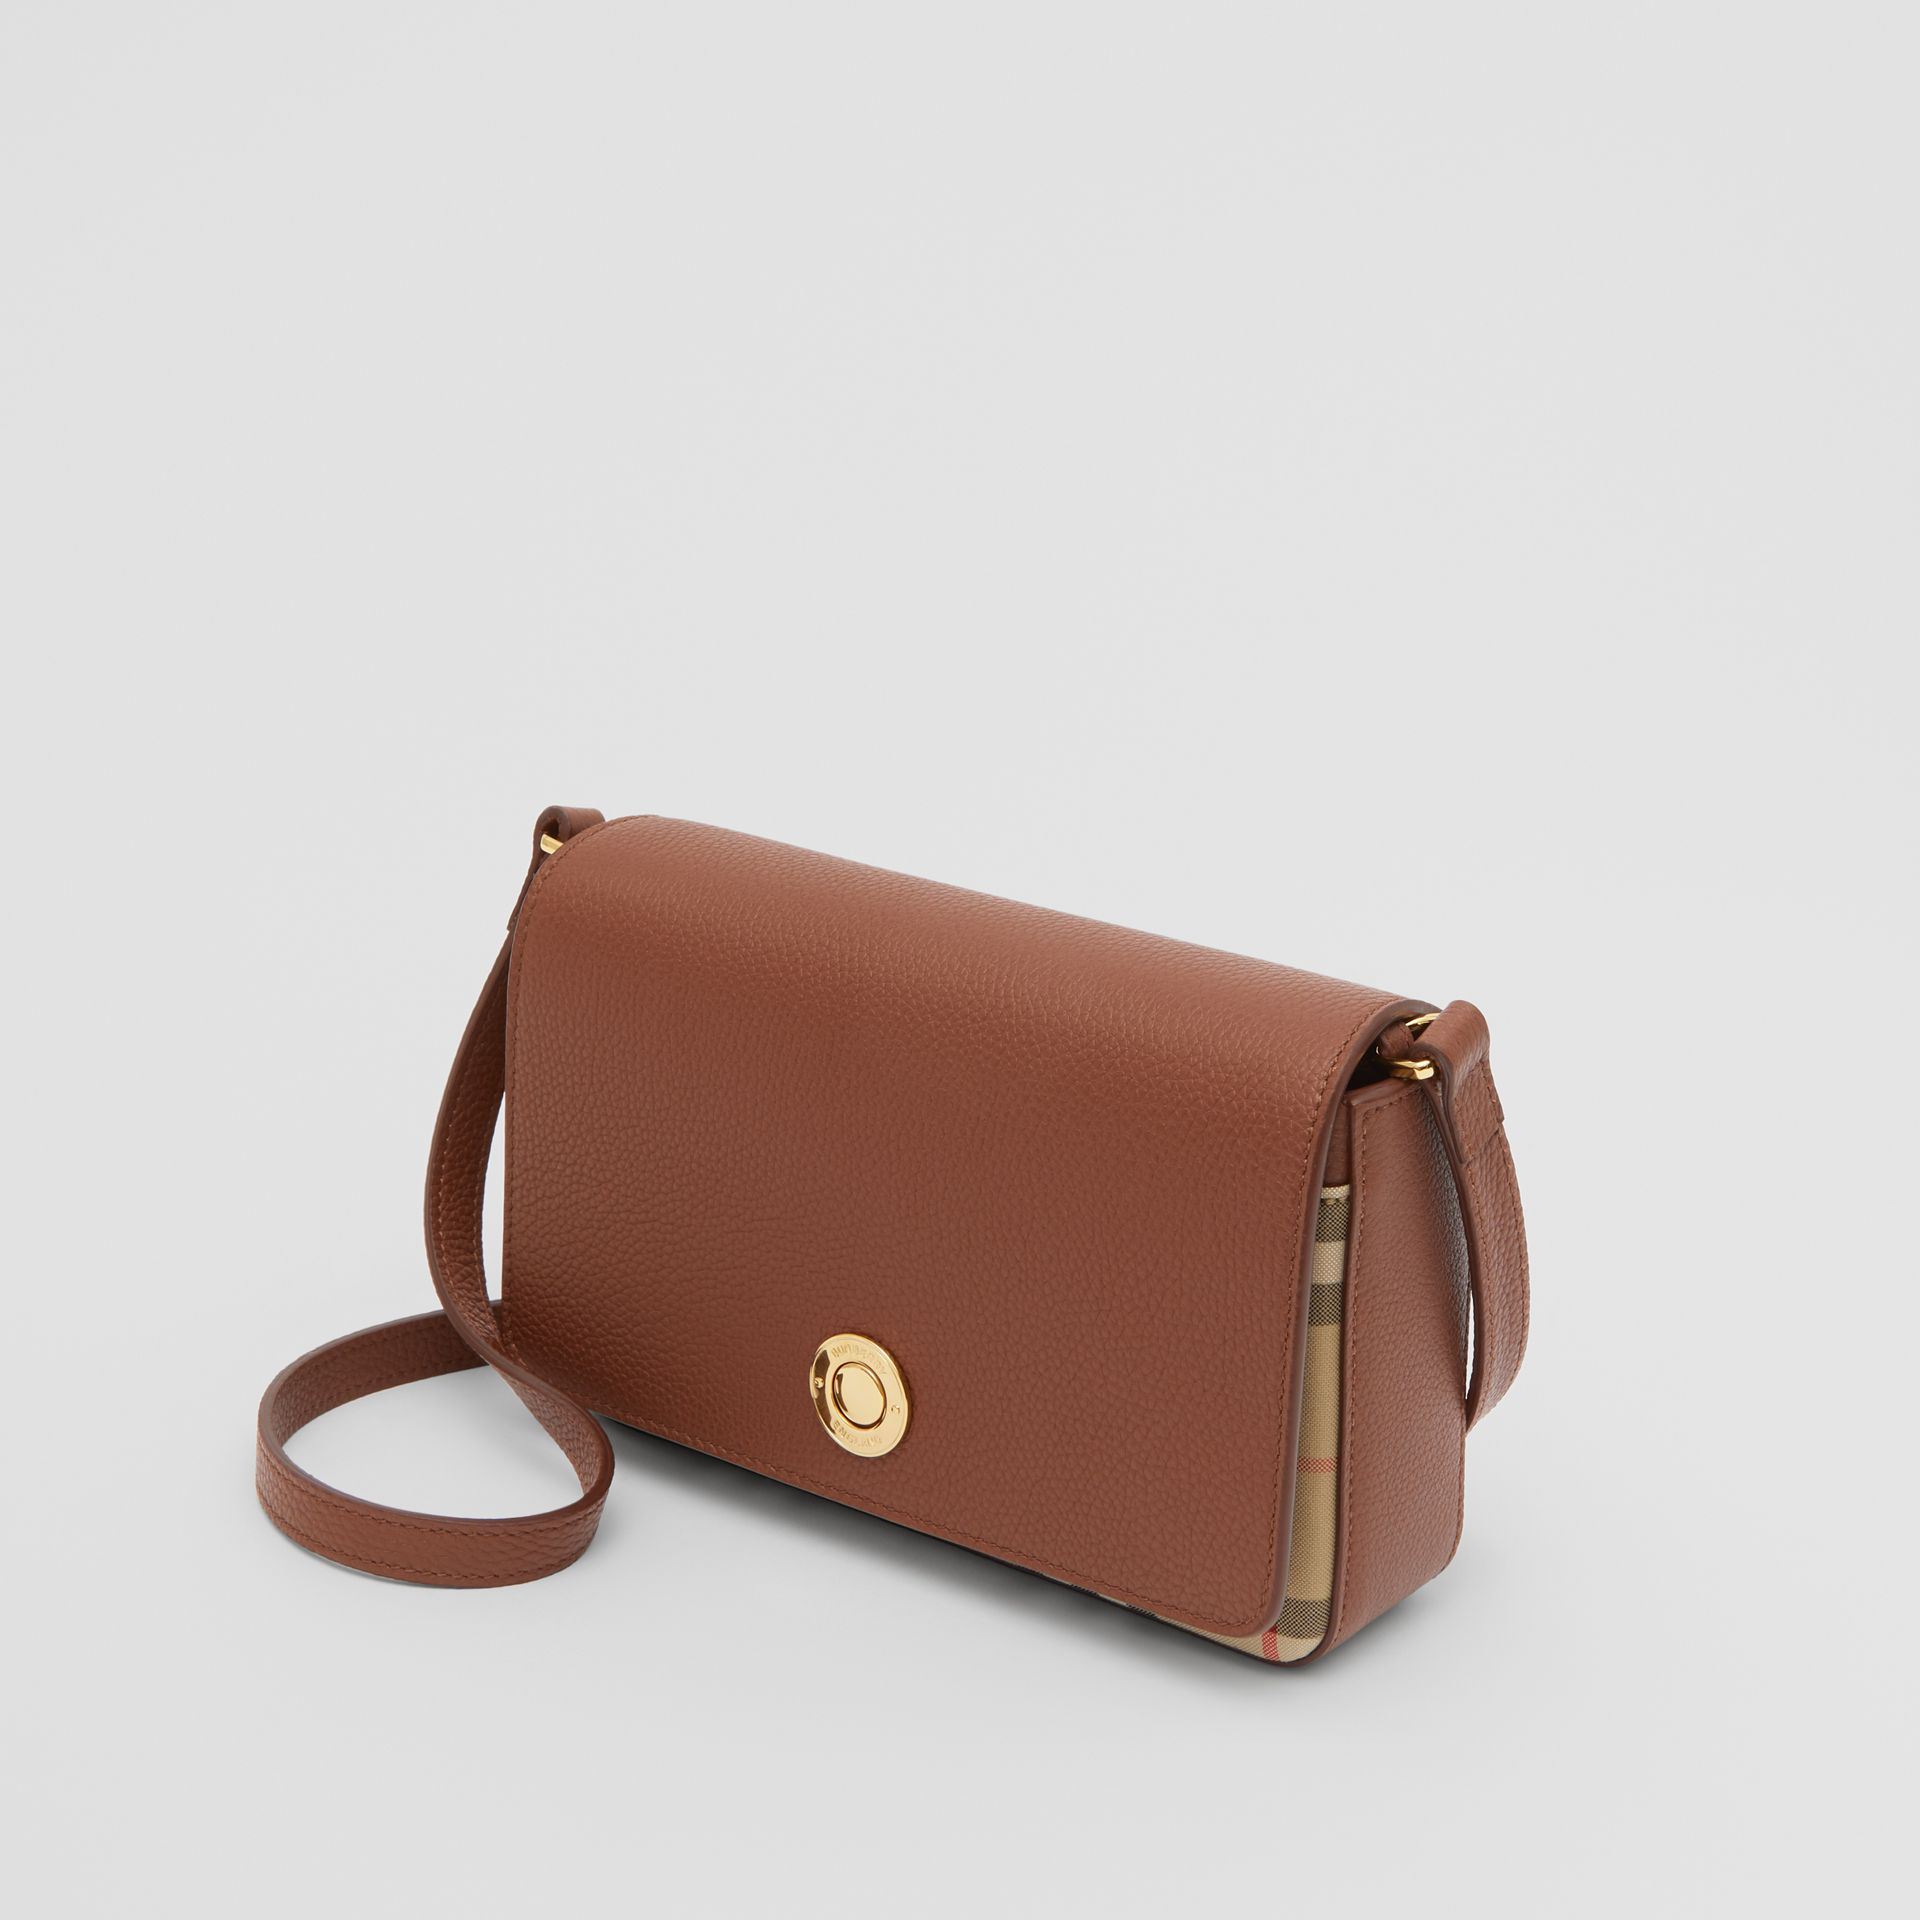 Small Leather and Vintage Check Crossbody Bag in Tan - Women | Burberry United Kingdom - gallery image 2